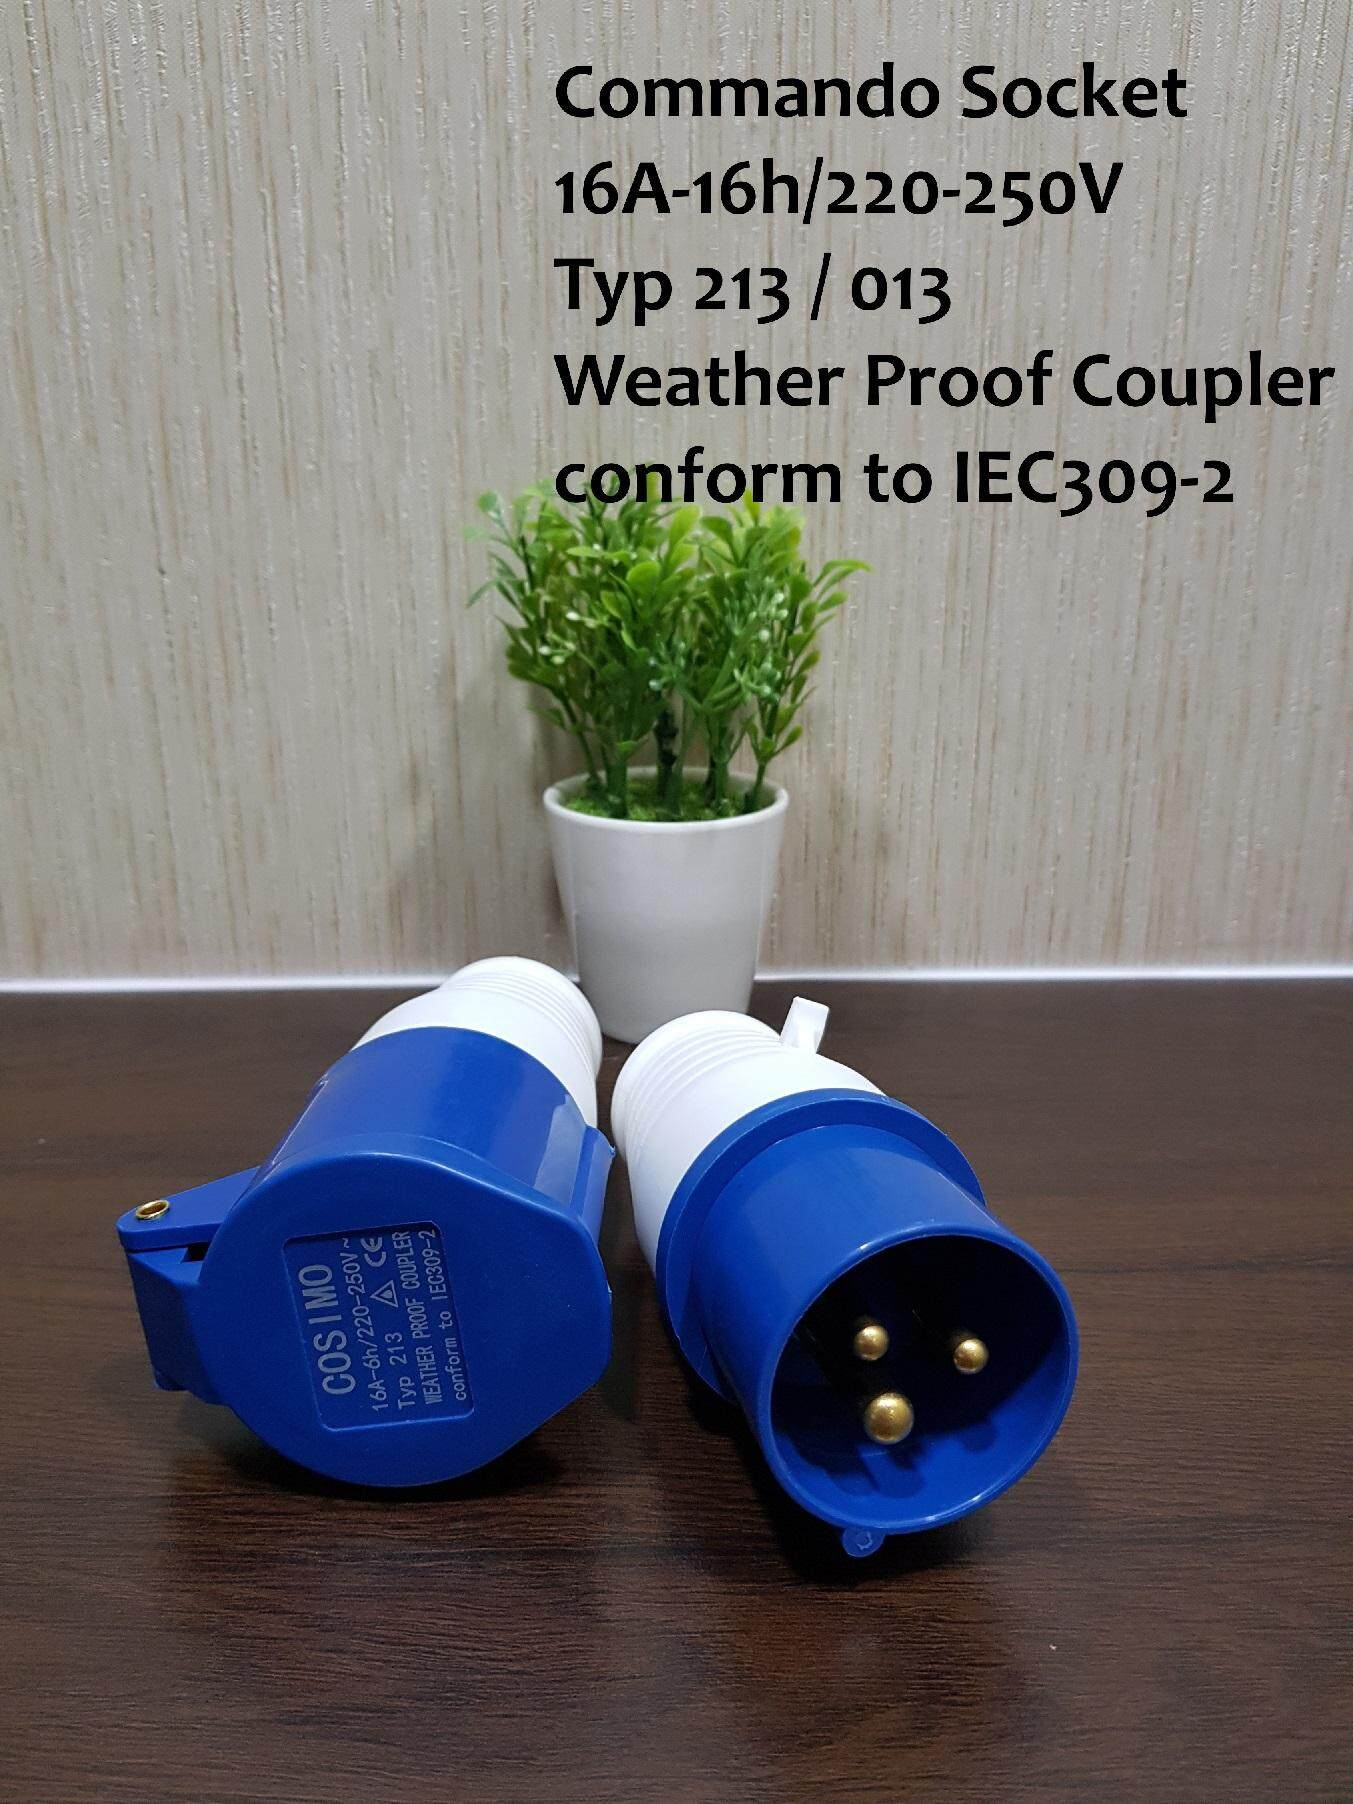 INDUSTRIAL COMMANDO SOCKET - FEMALE & MALE (1 SET)- 3 PIN WITH 1 EARTH 16AMP 220V